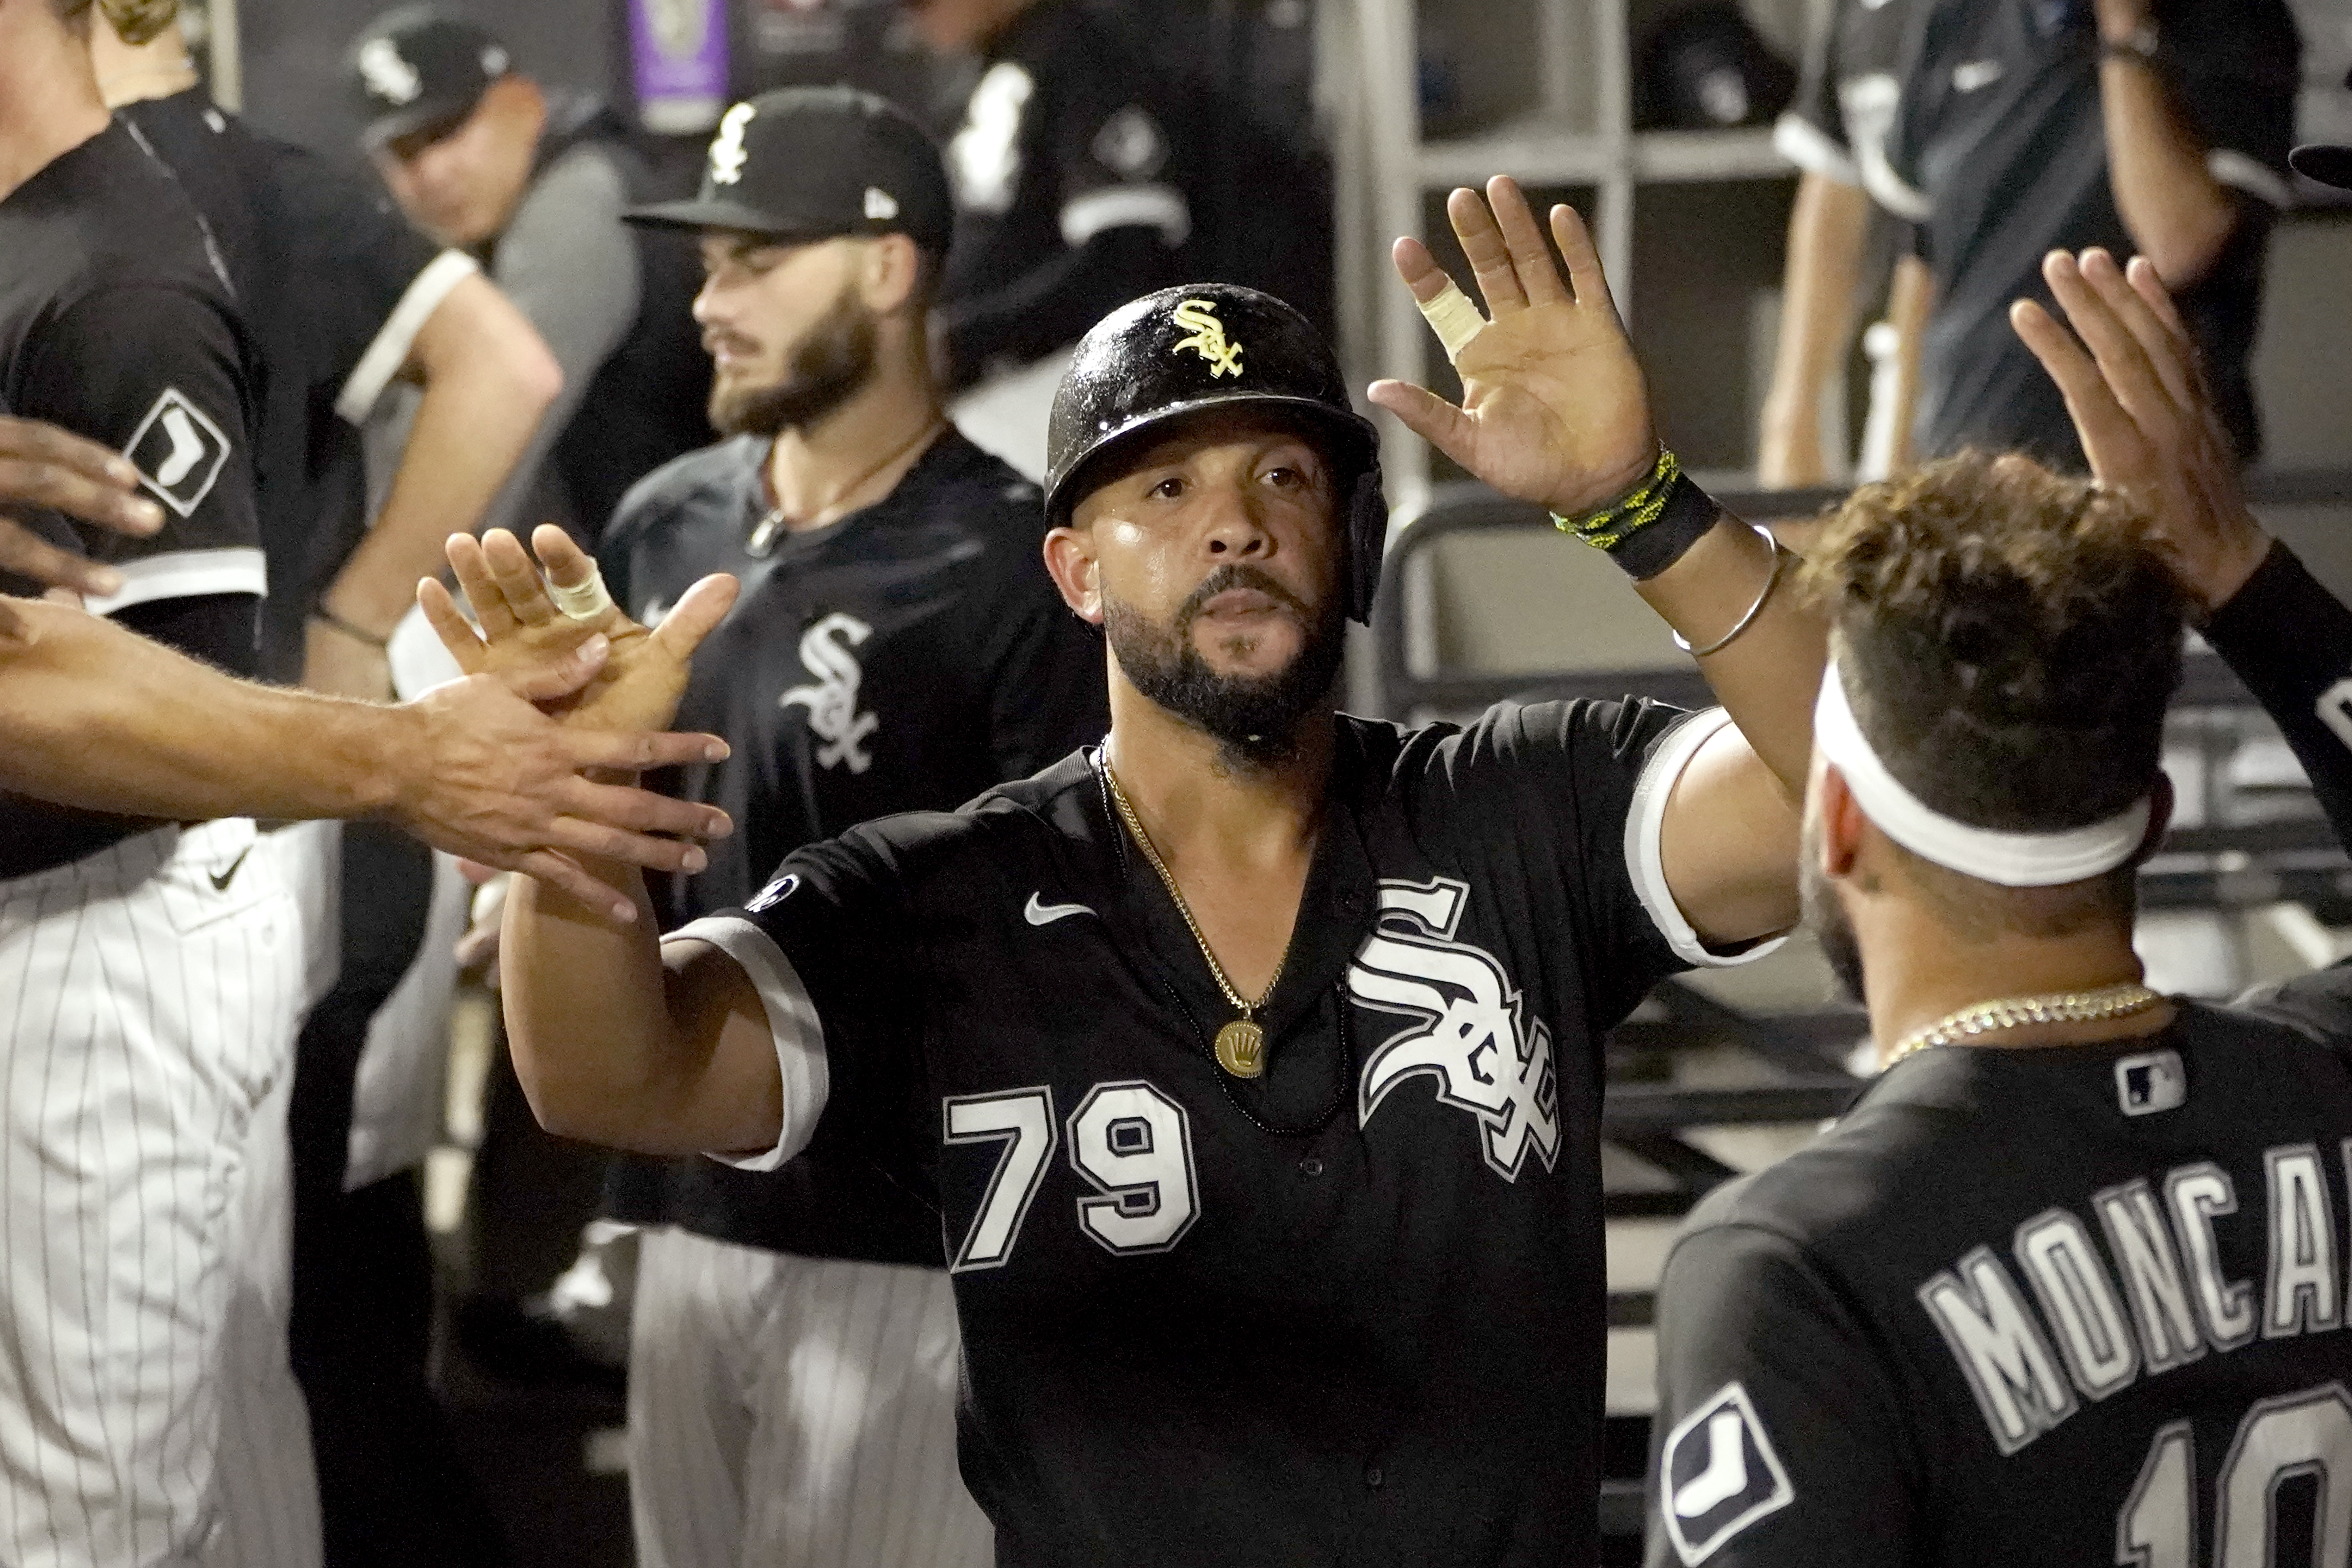 White Sox first baseman José Abreu was named American League Player of the Month for August on Thursday, his fourth career monthly honor.